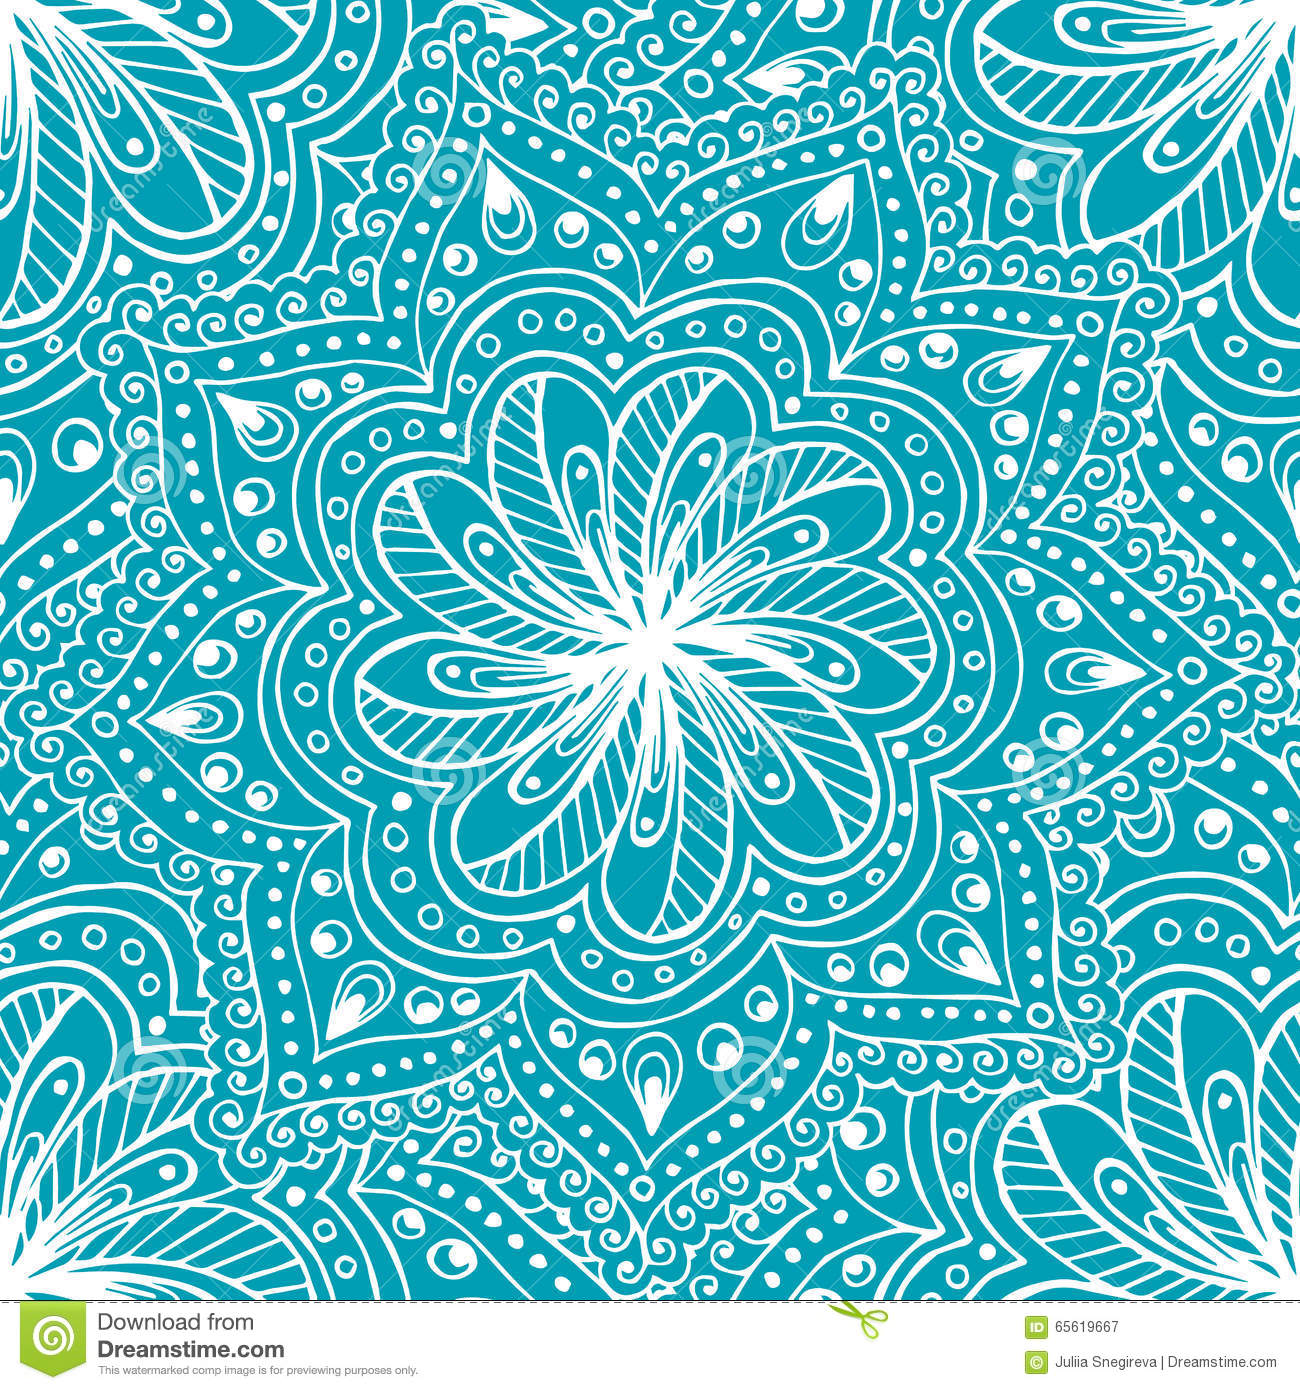 Doodle Seamless Background In Vector With Doodles Flowers